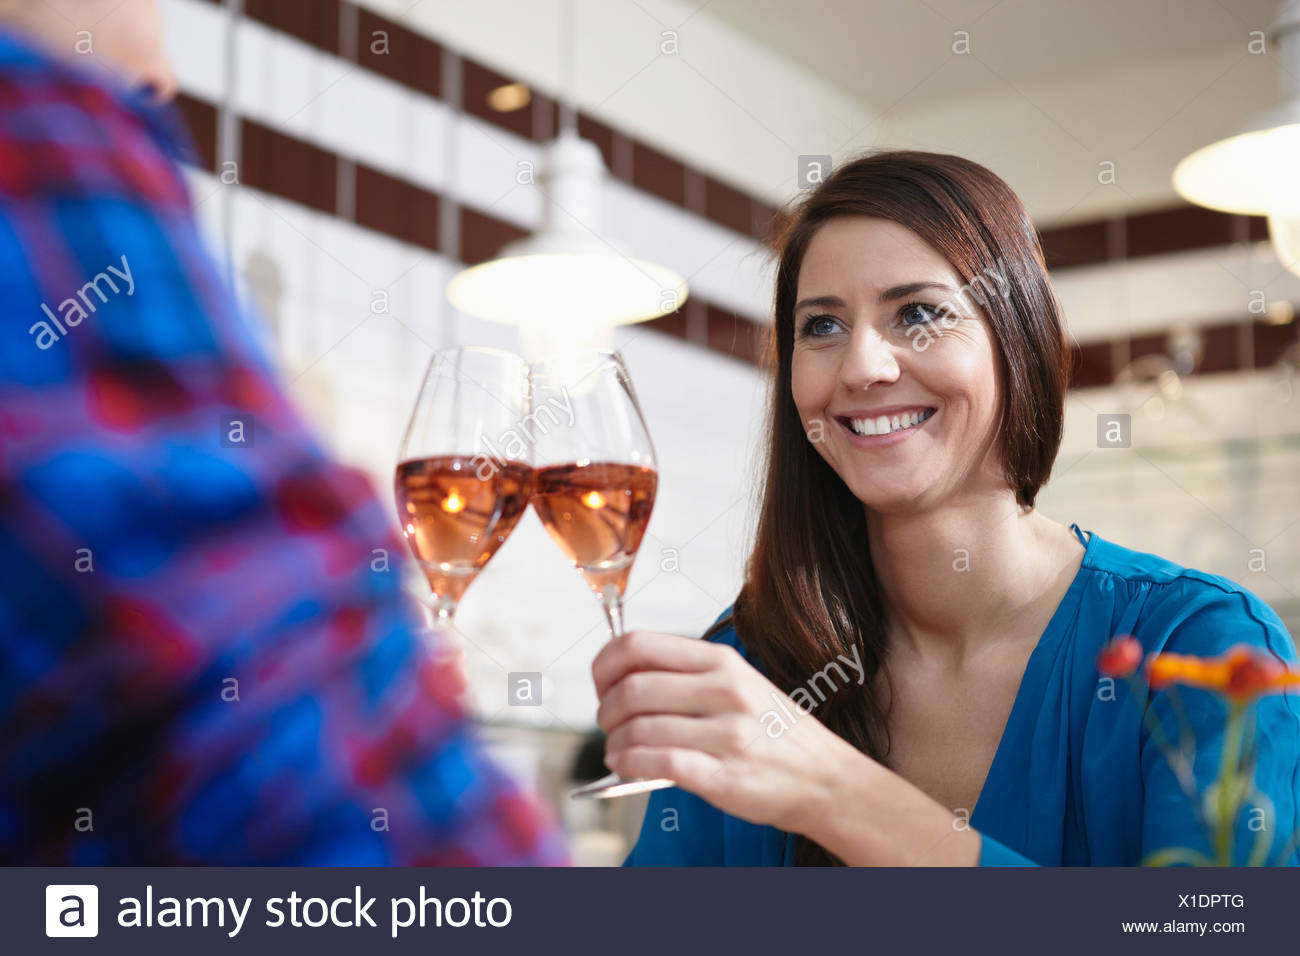 Germany, Cologne, Couple drinking wine, smiling - Stock Image